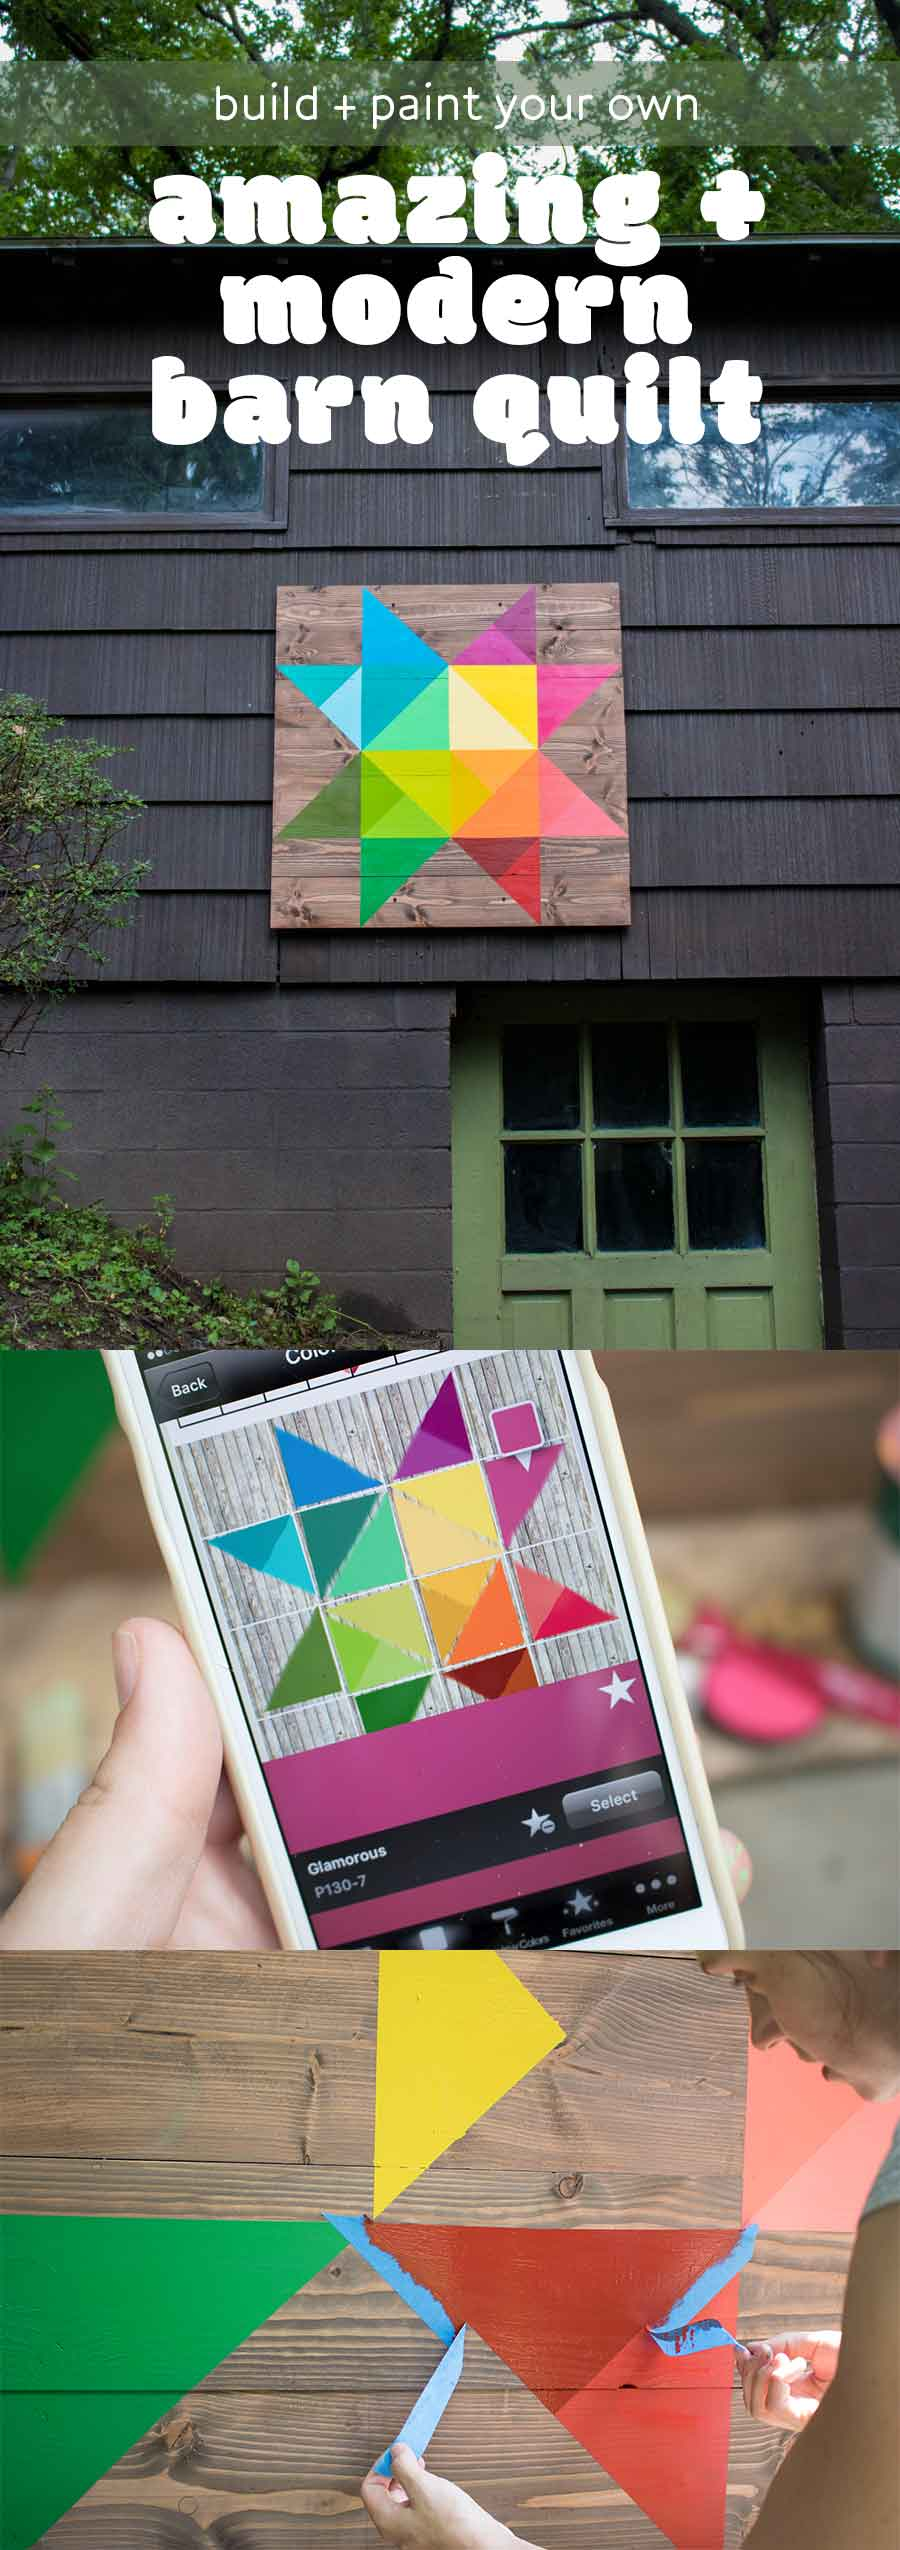 How to build and paint a modern barn quilt as a nod to traditional outdoor decor.